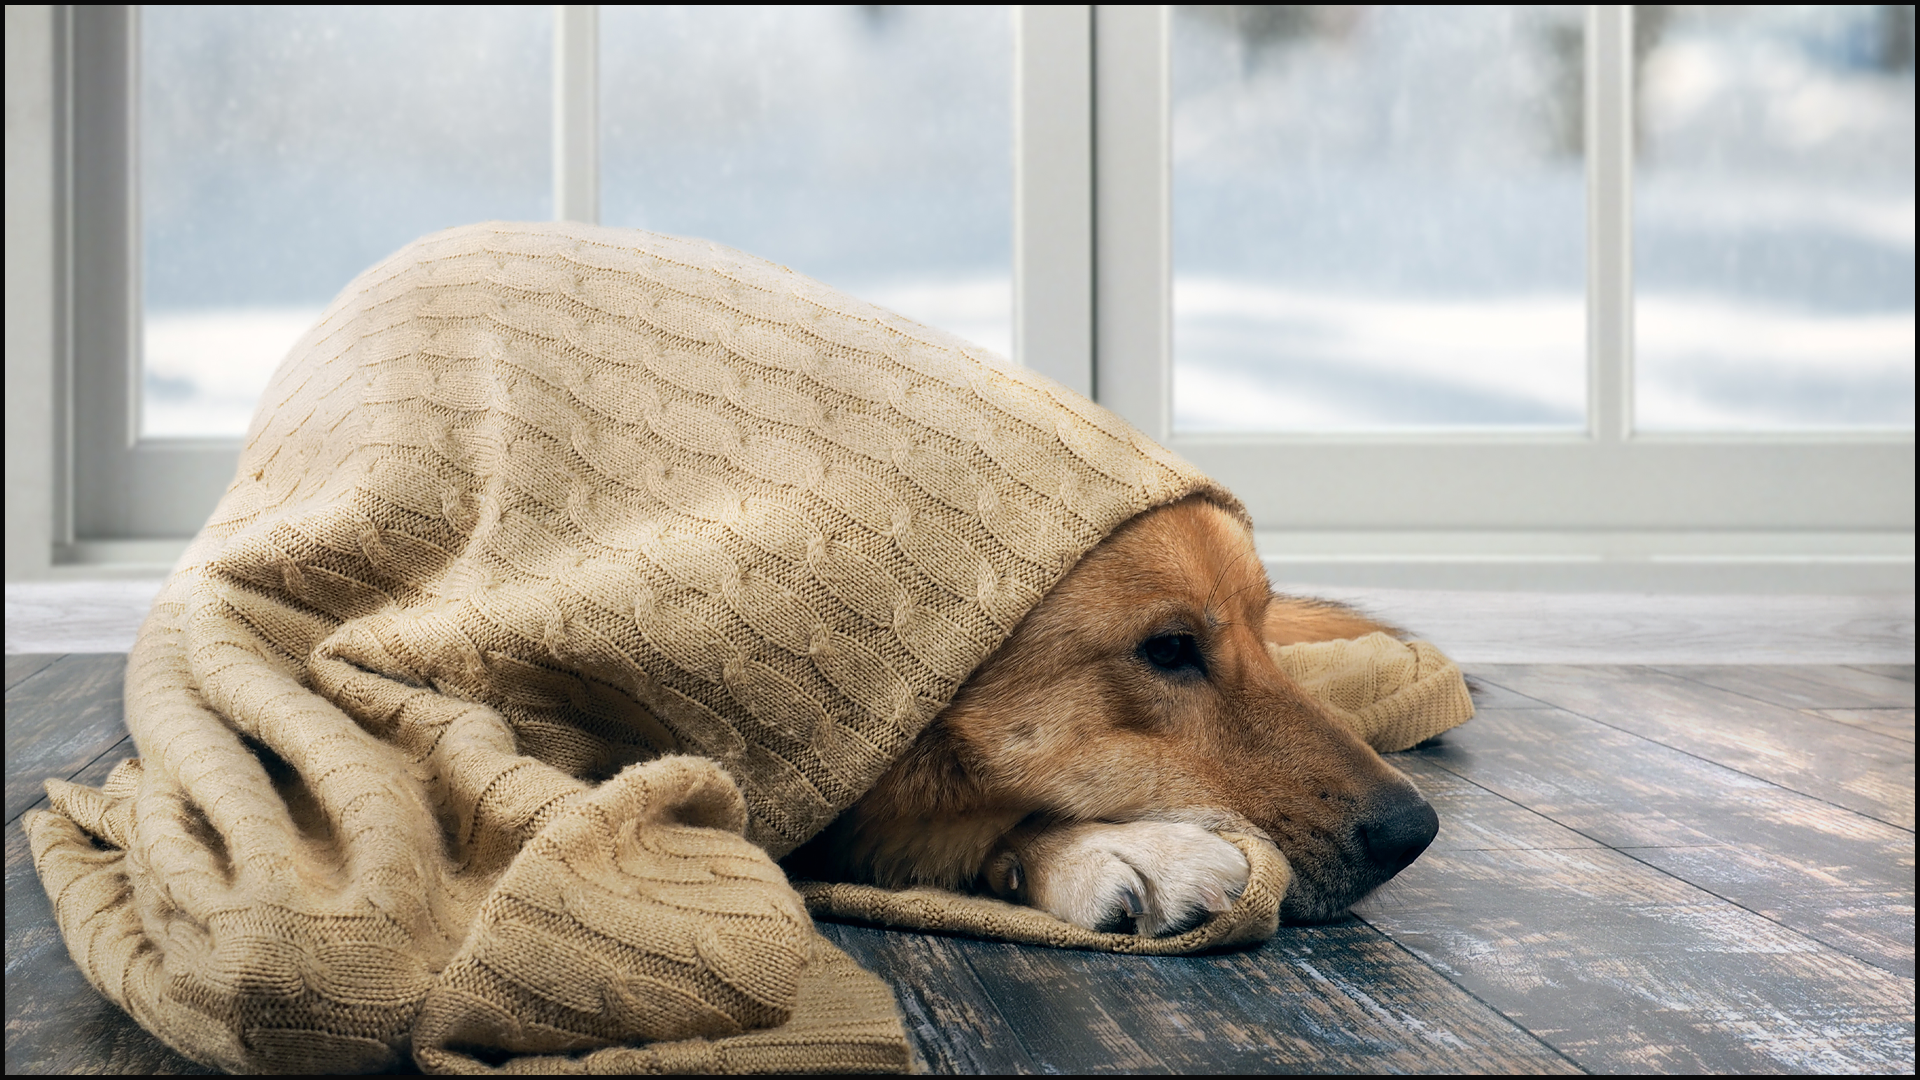 12 Tips to Keep Your Pets Safe in Cold Weather